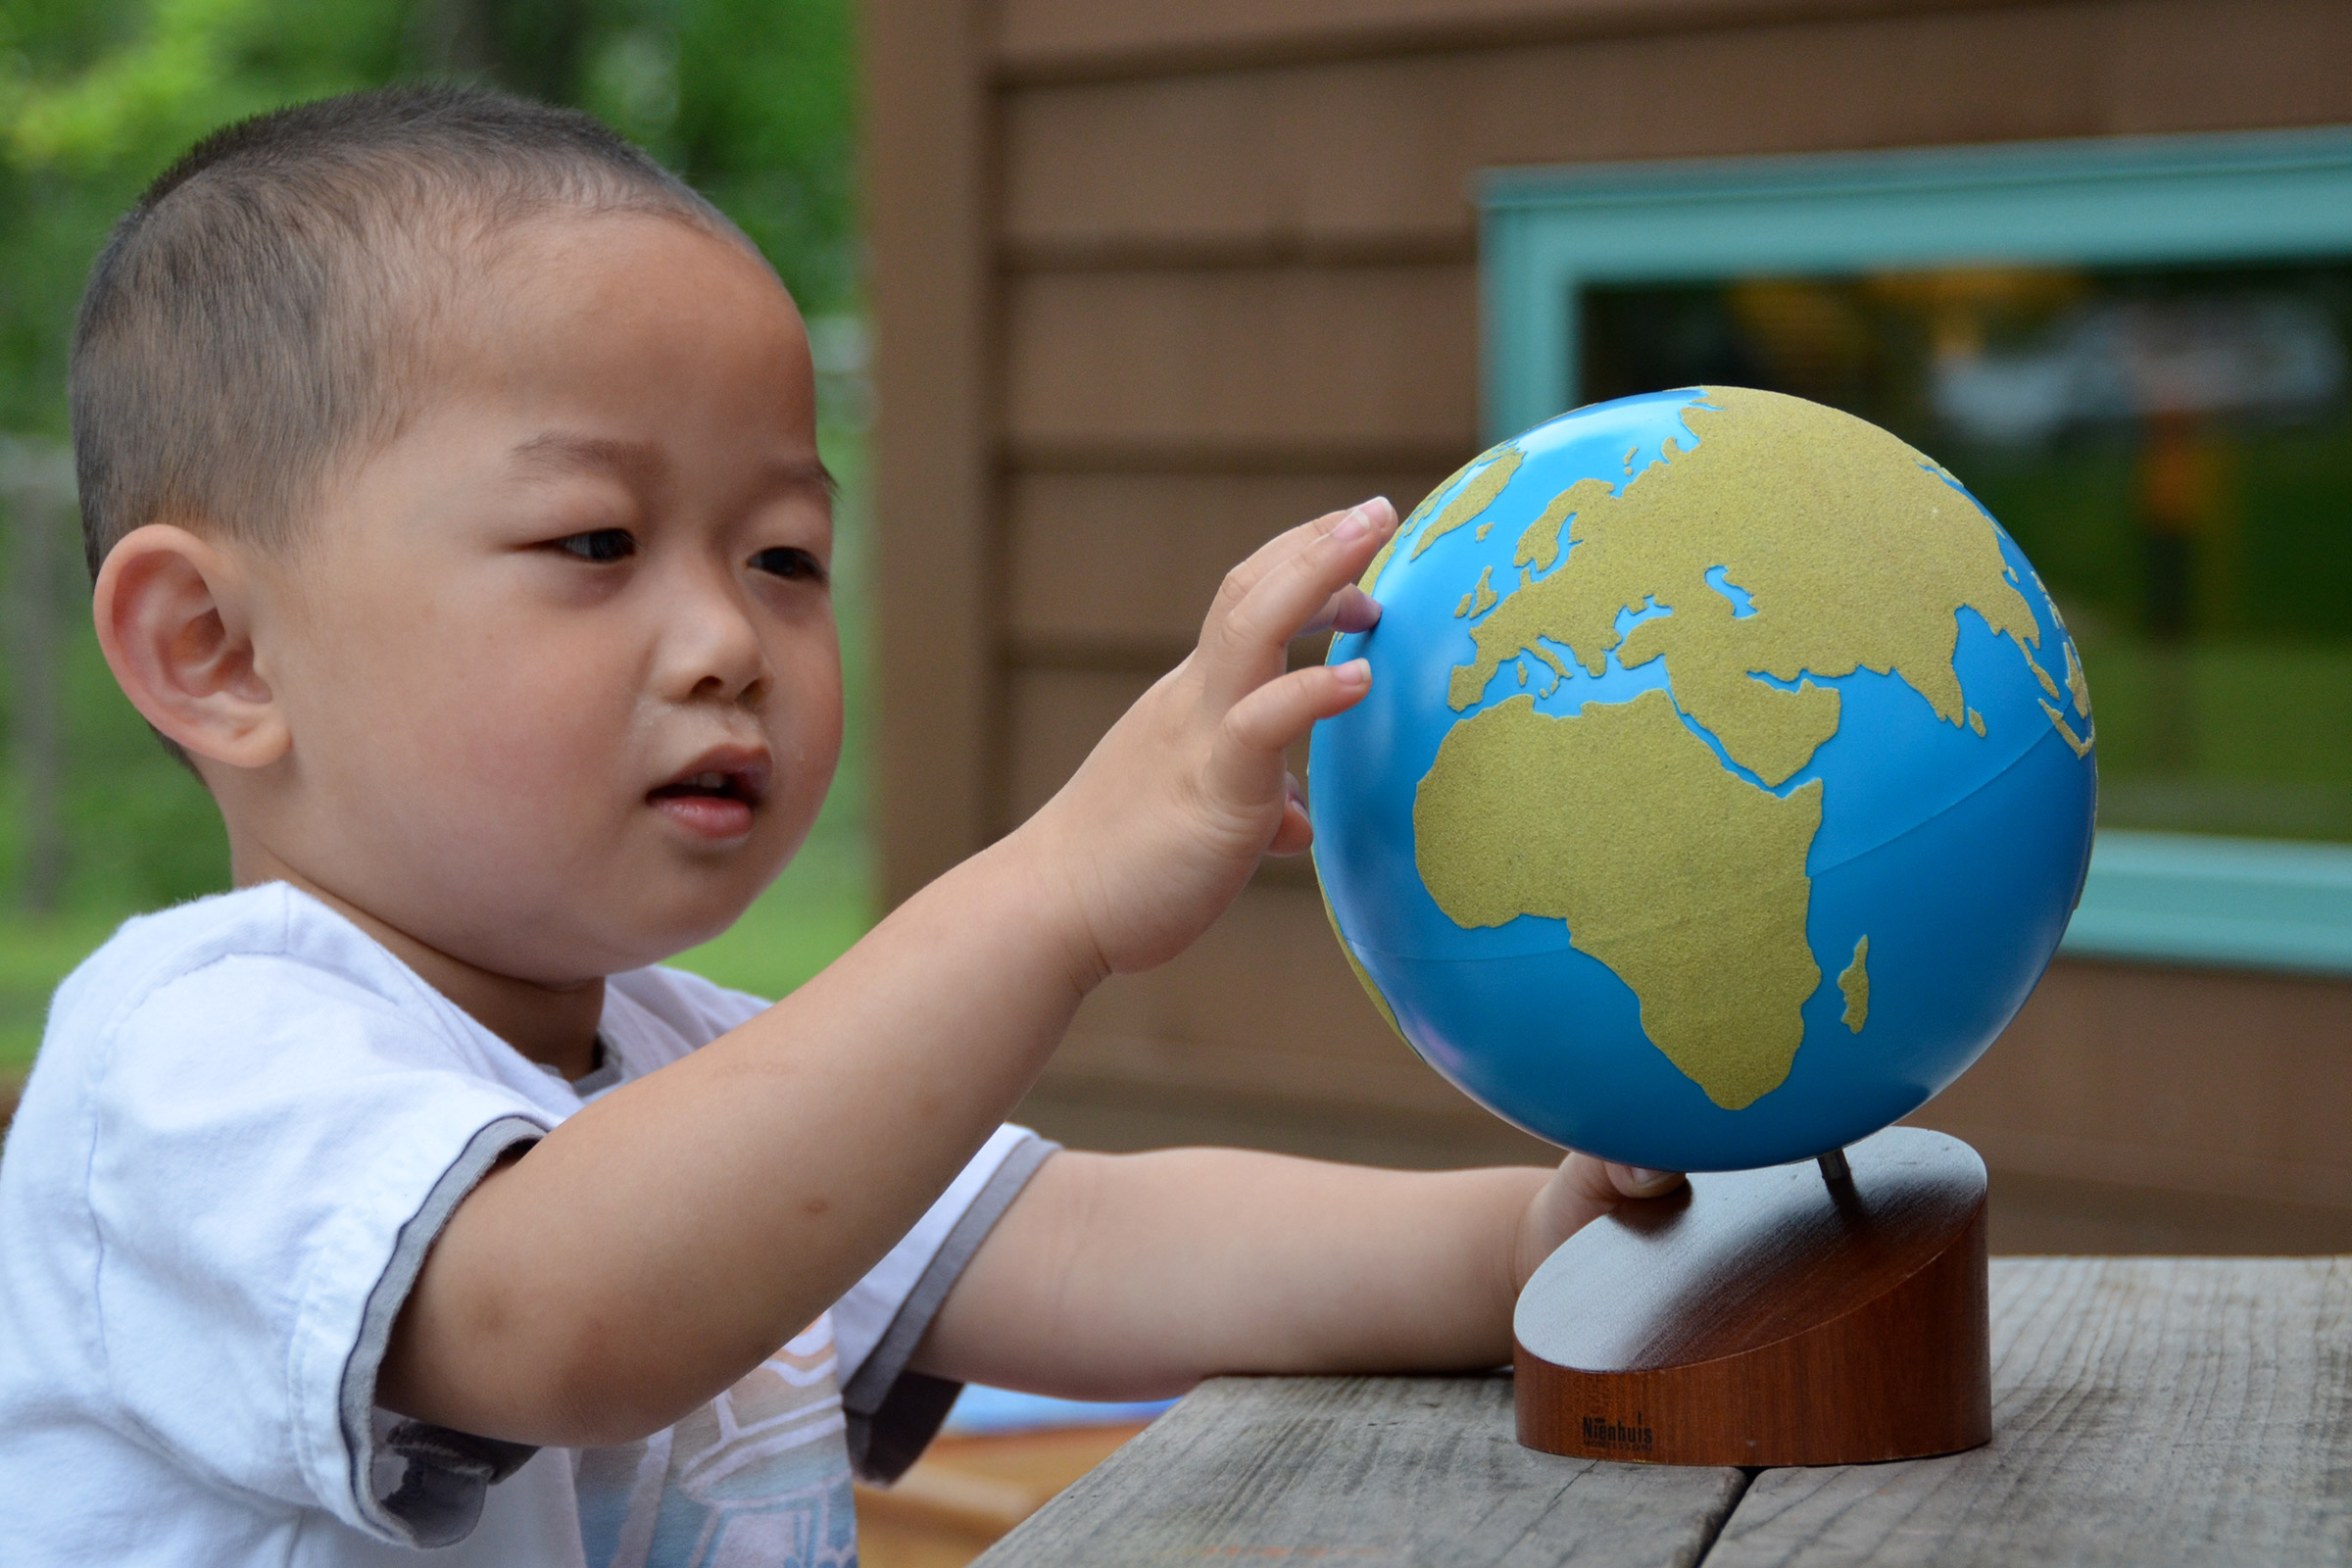 Child using sandpaper globe